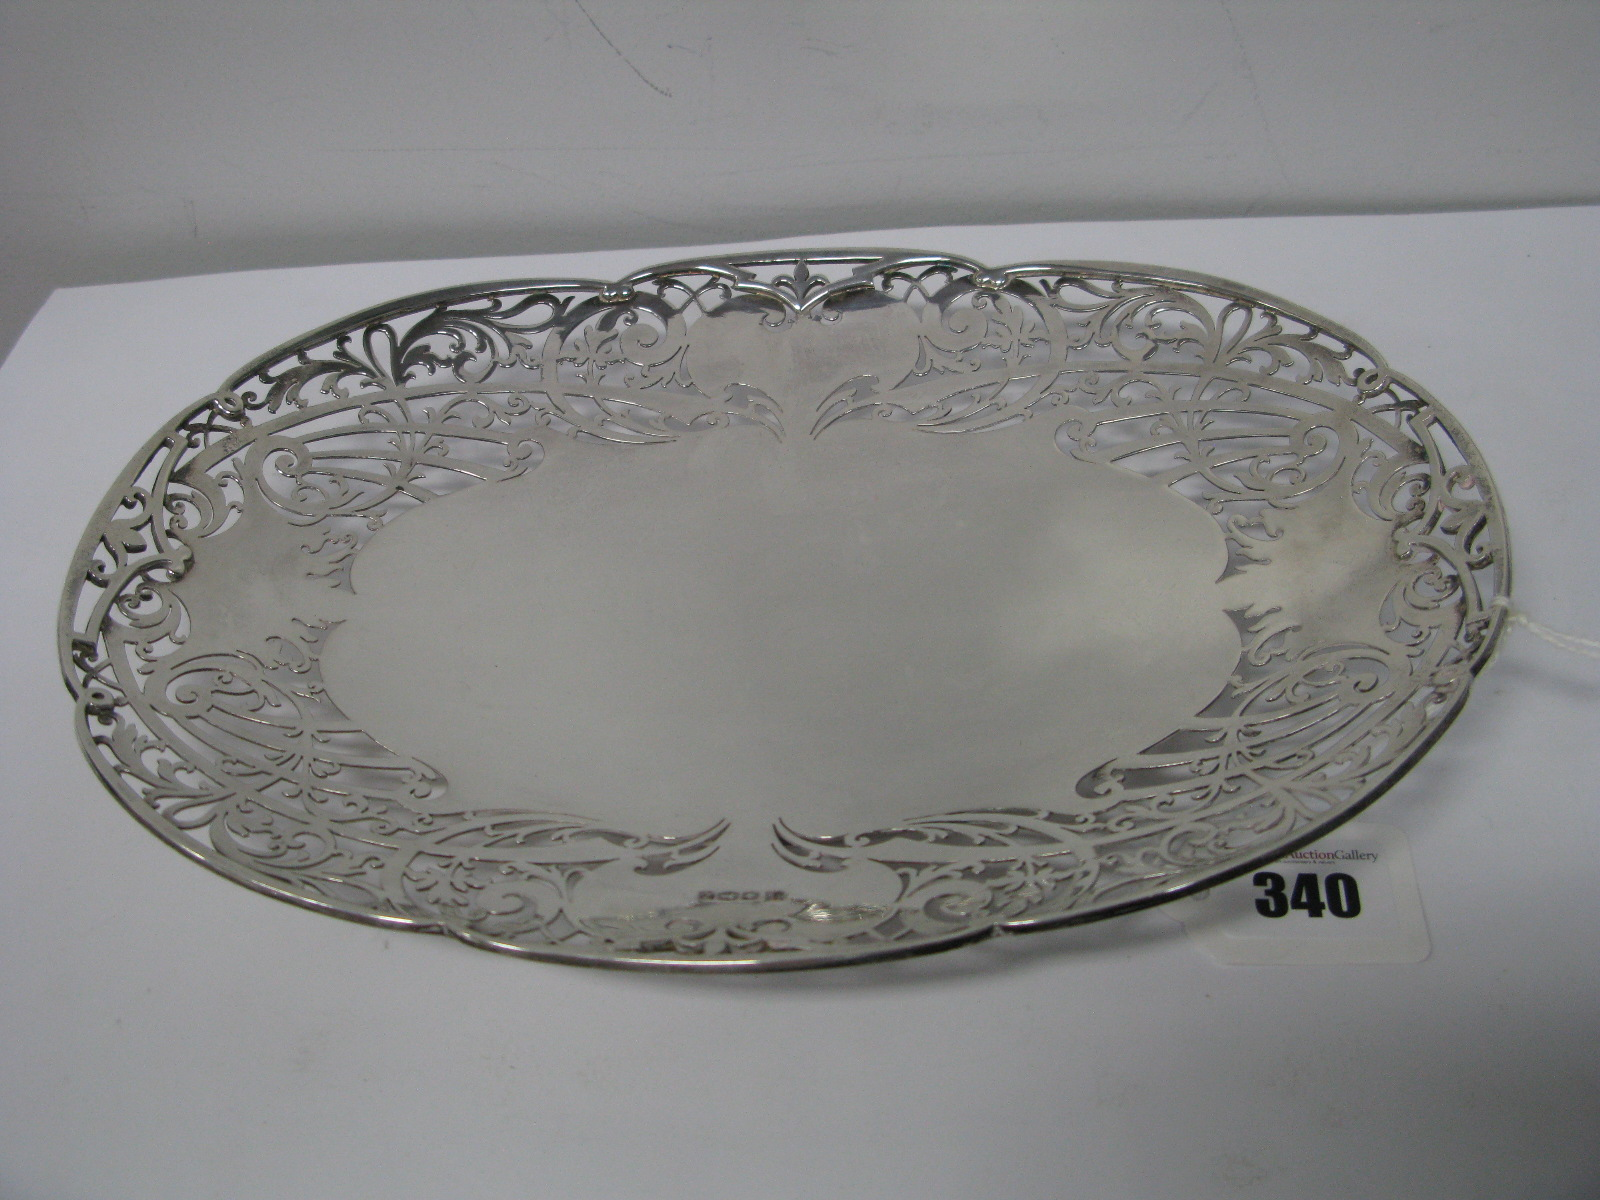 Lot 340 - A Decorative Hallmarked Silver Dish, CB&S, Sheffield 1942, of oval form, the wide rim of openwork